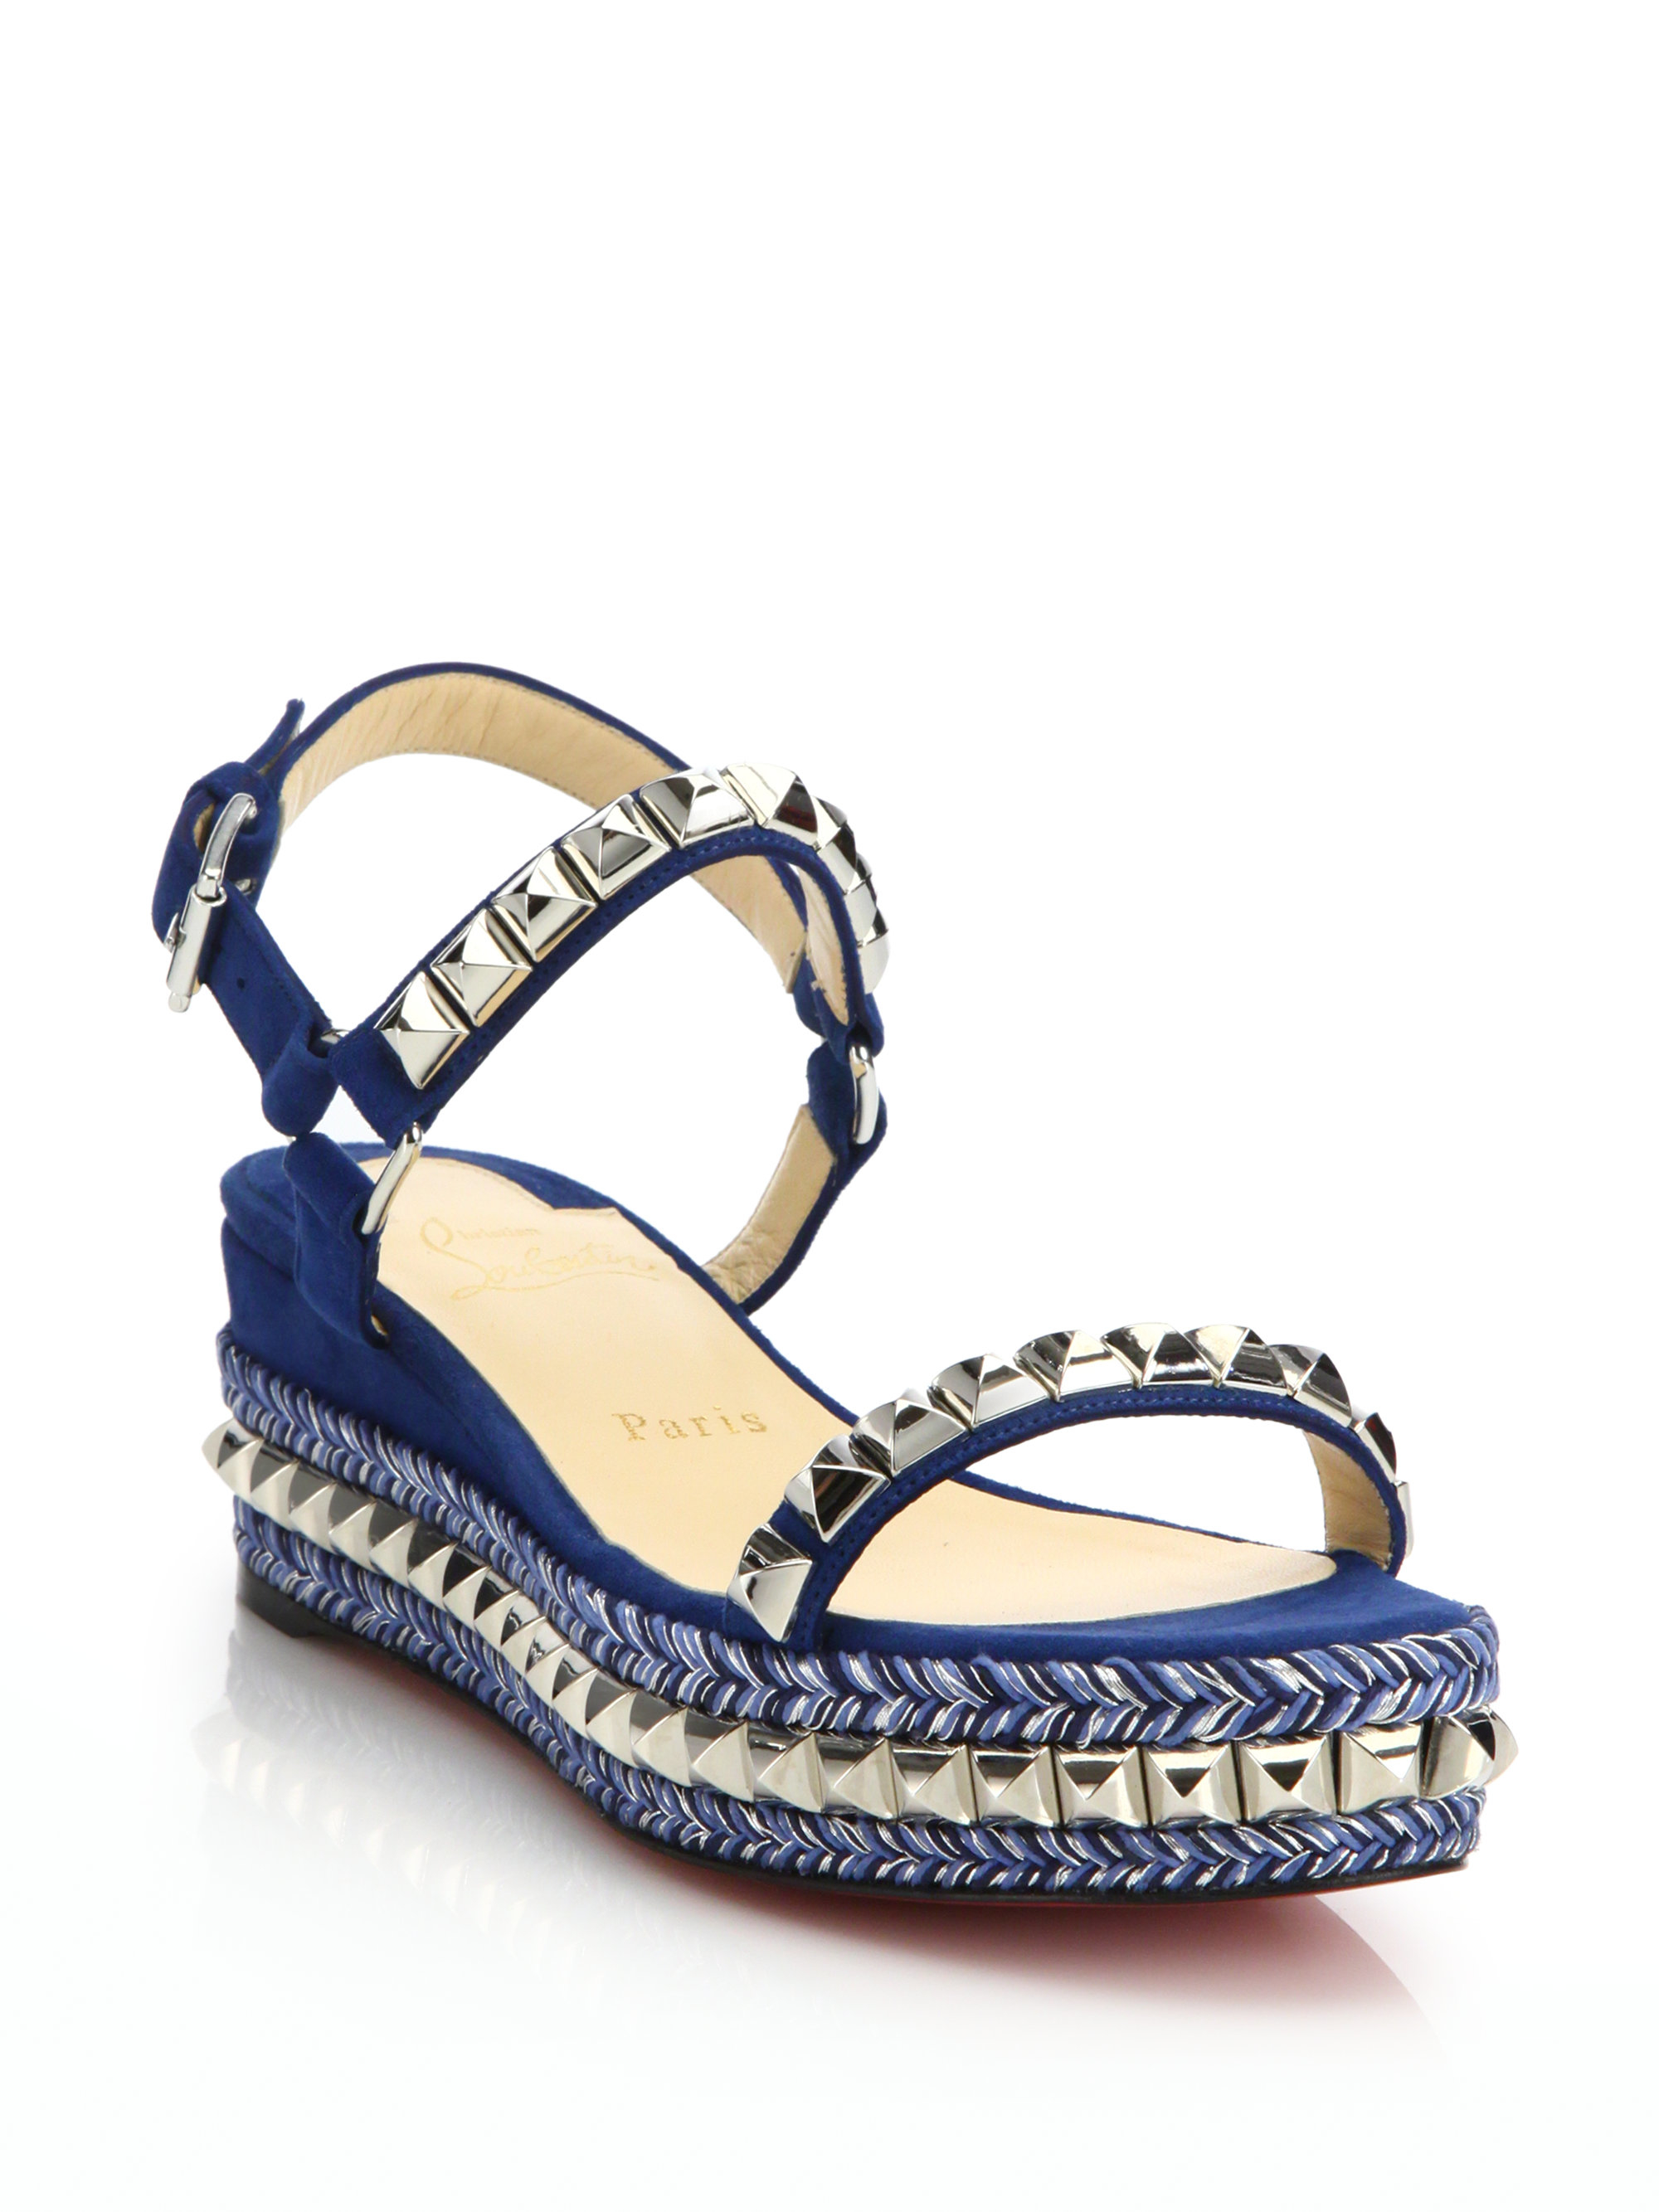 bb677d1ed48f ... ireland lyst christian louboutin suede leather platform sandals in blue  90a8a f9394